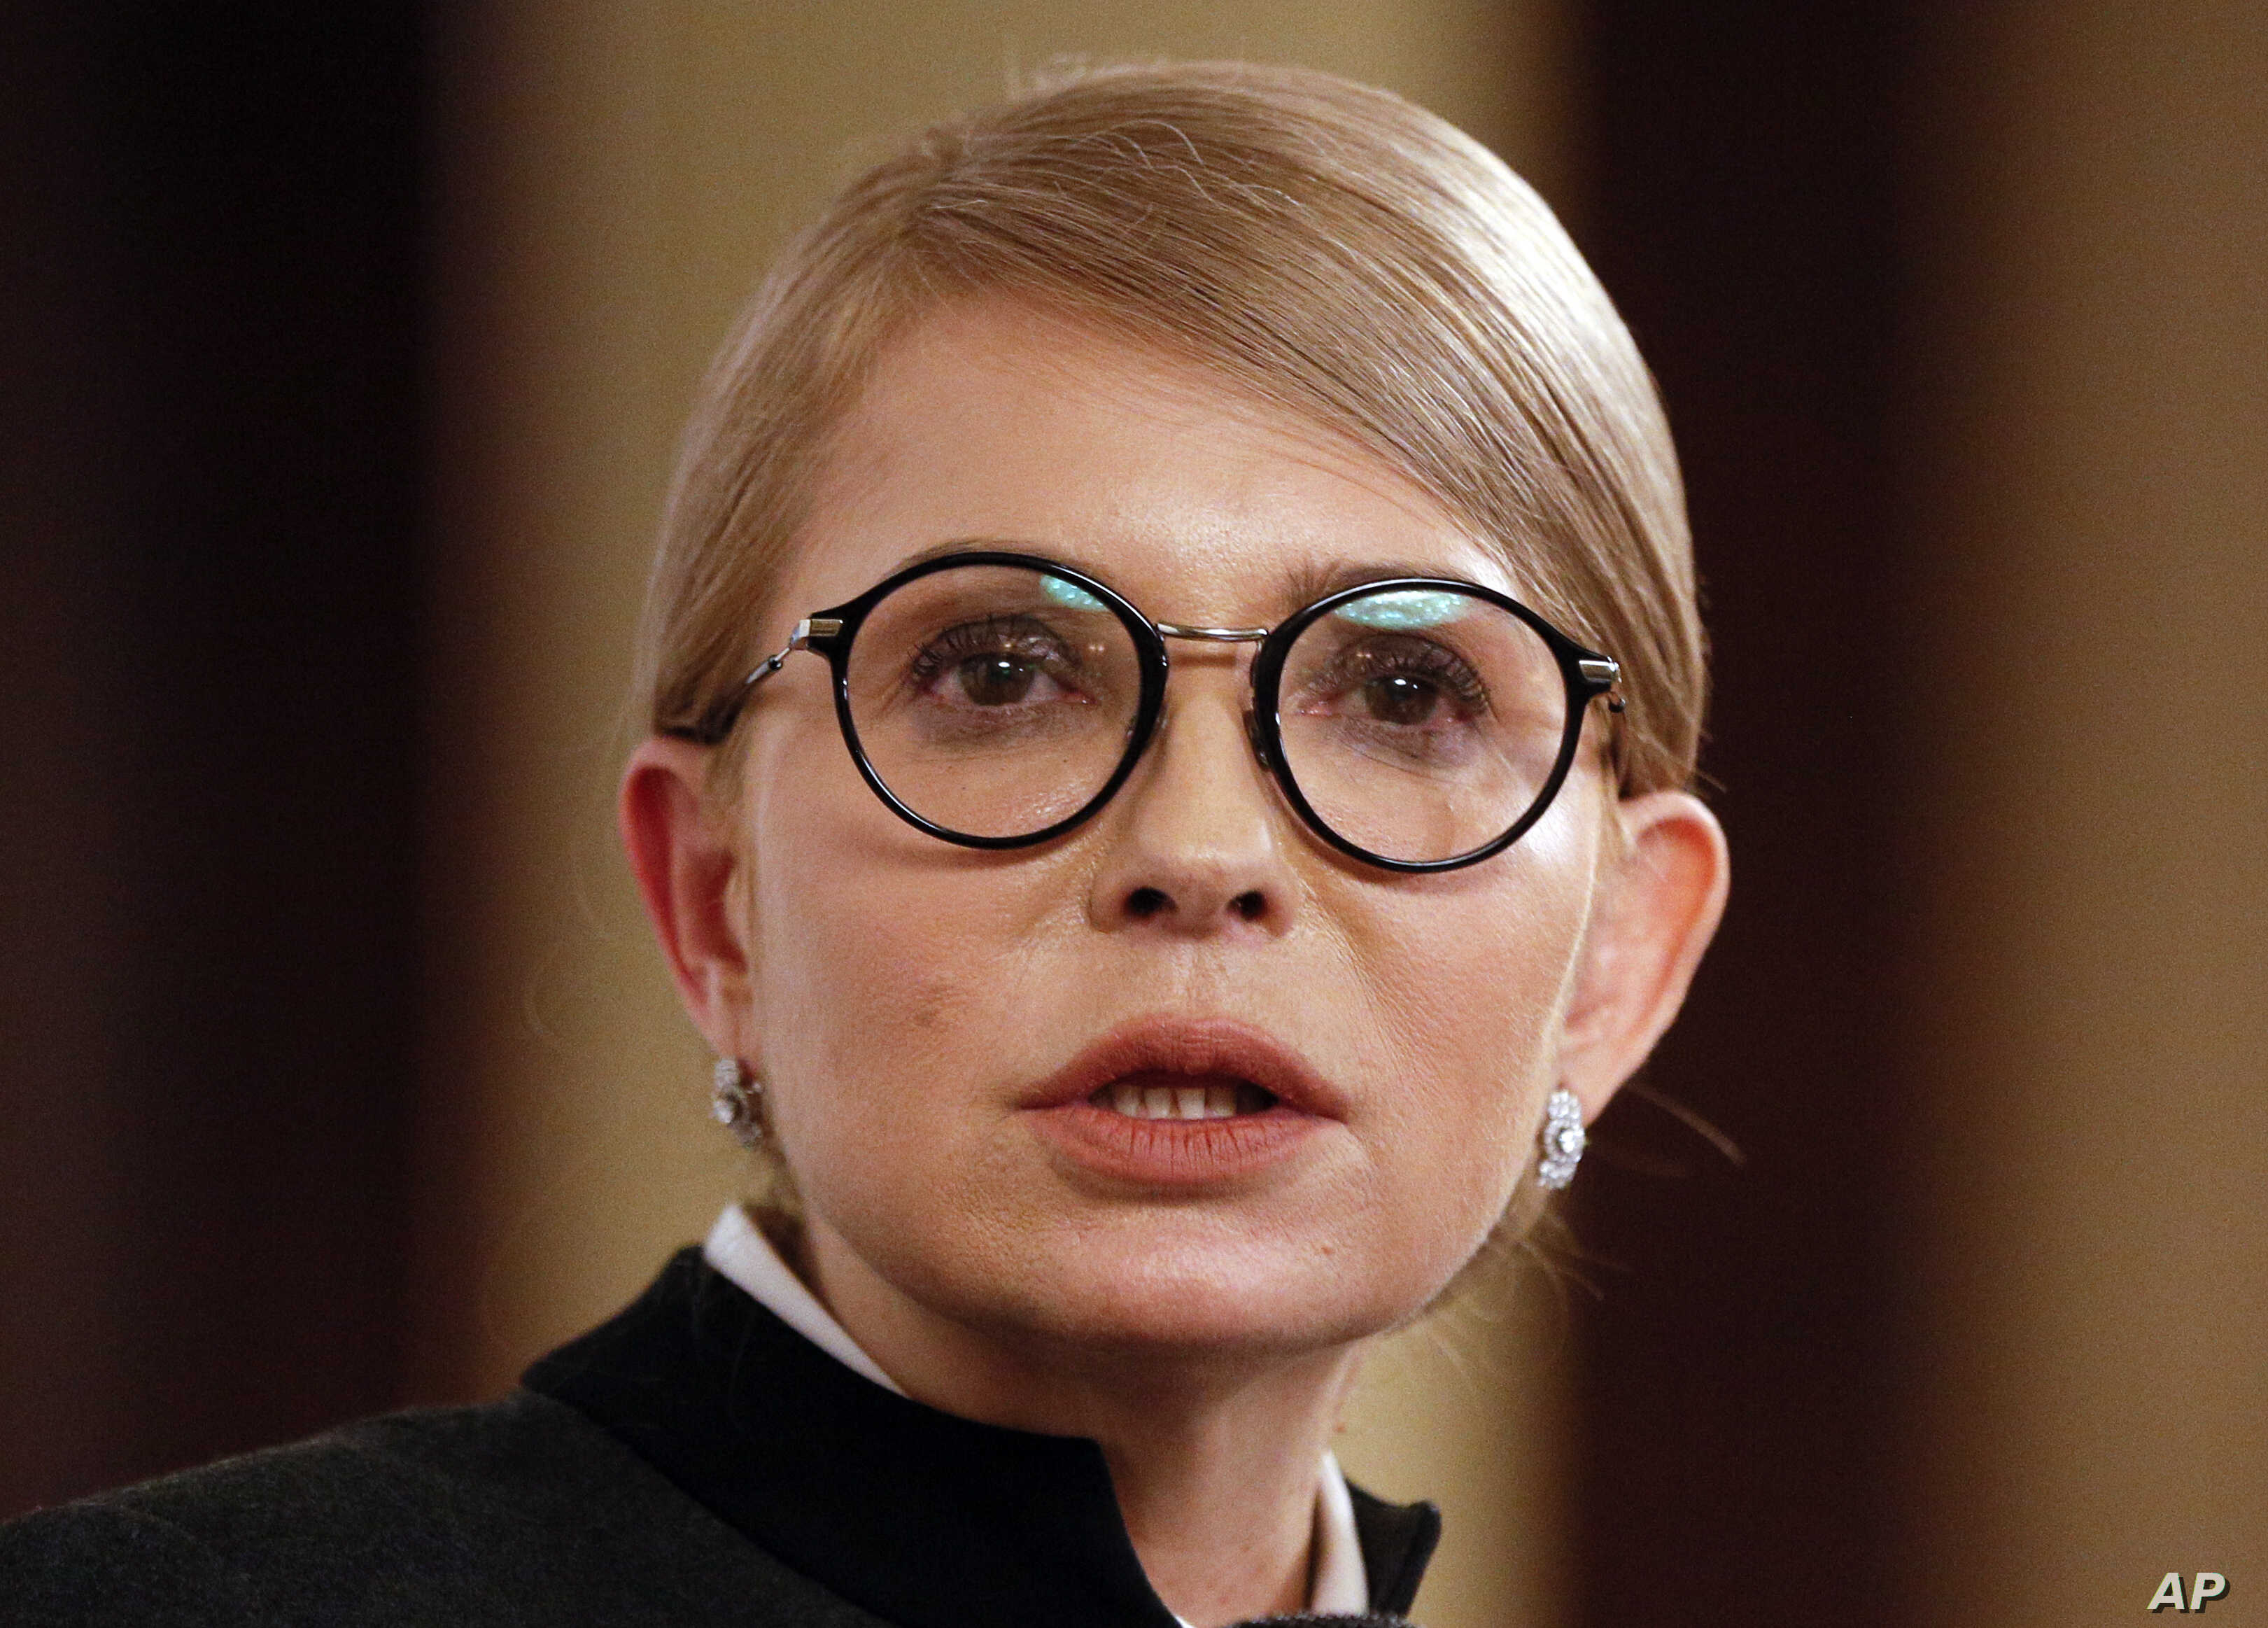 Former Ukrainian prime minister Yulia Tymoshenko speaks during her interview with The Associated Press in Kyiv, Ukraine, Feb. 4, 2019.